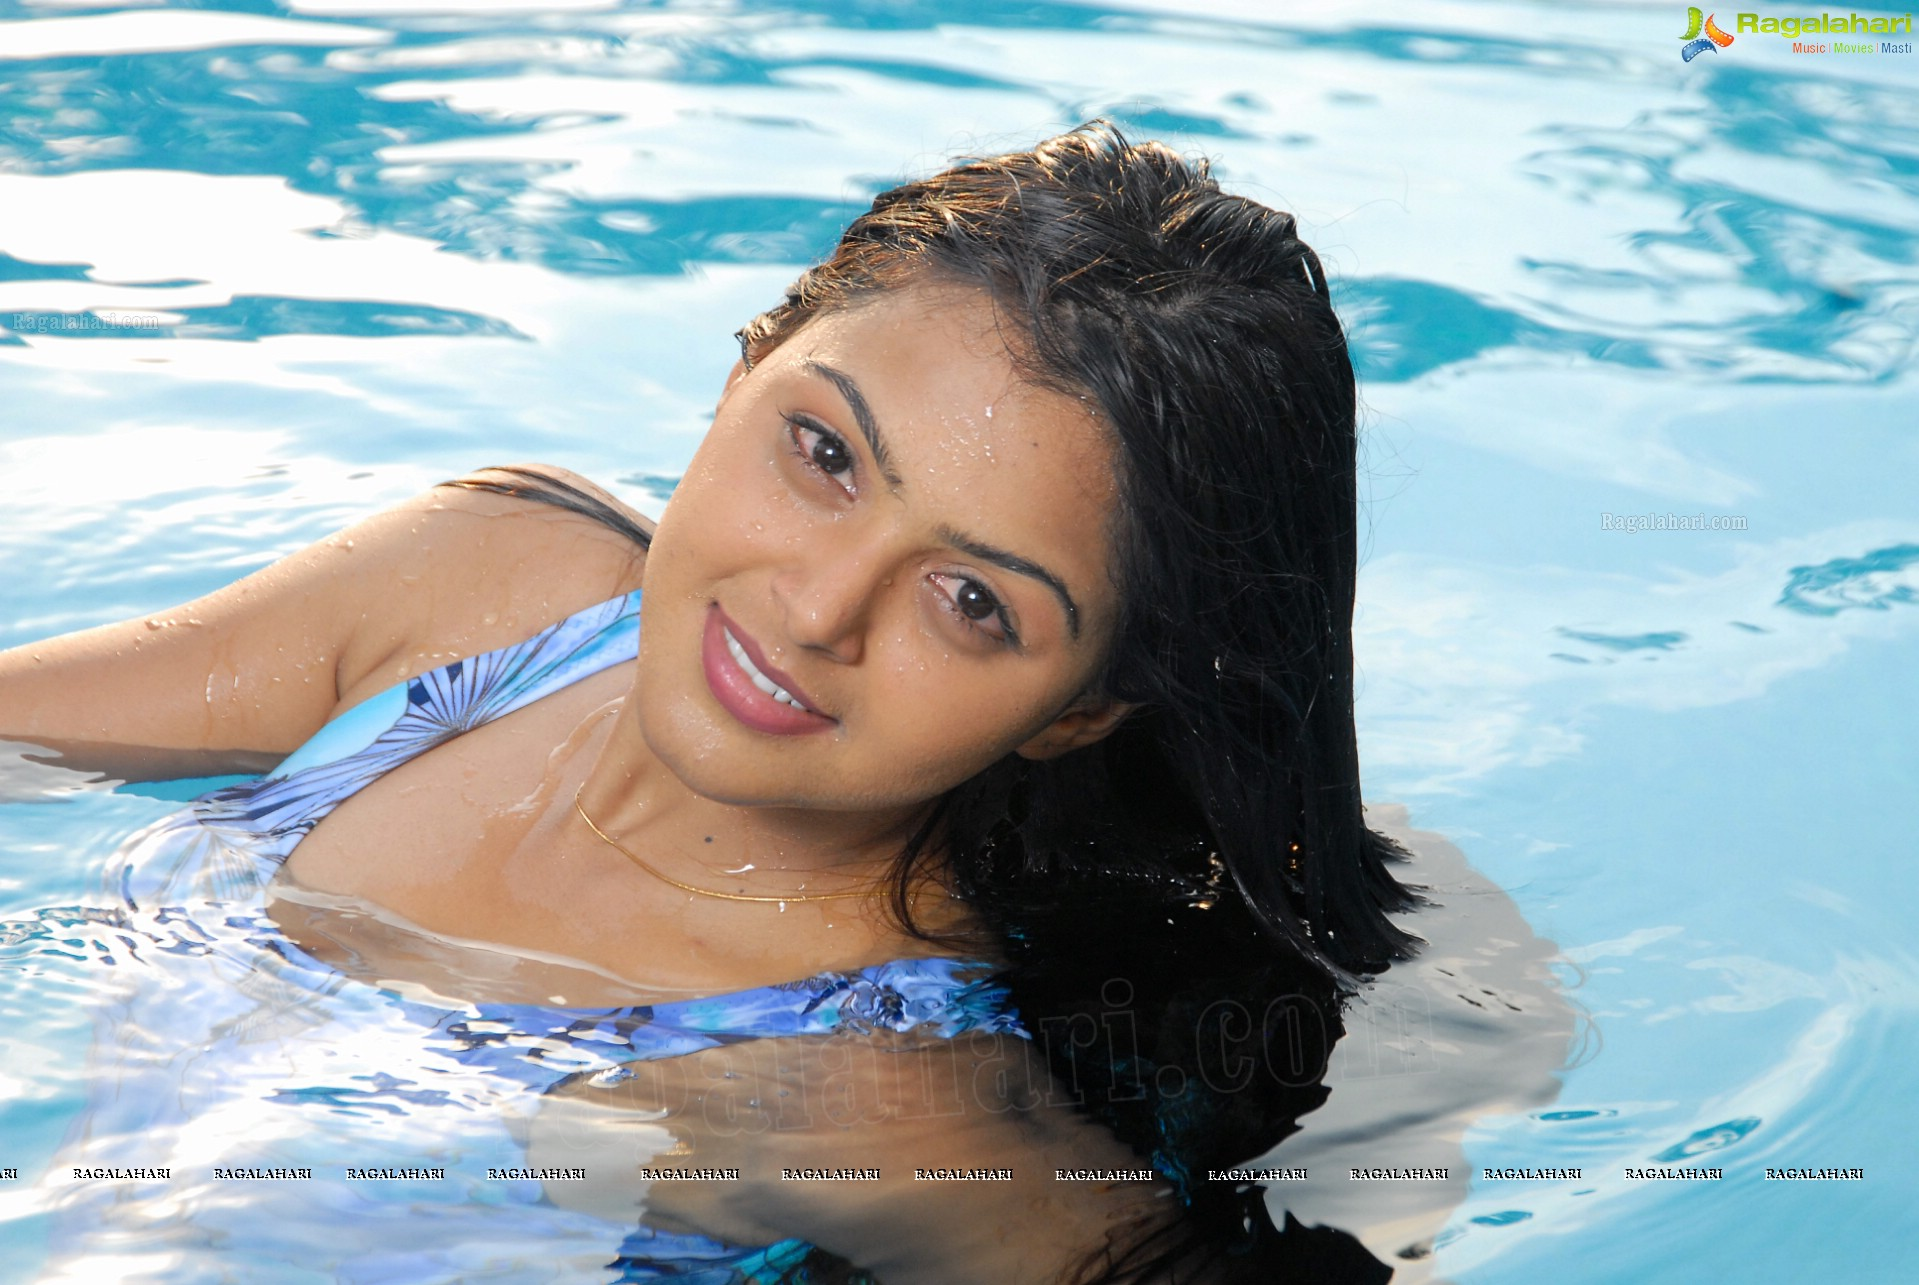 Inspirational Swimming Pool Movie Actress Name